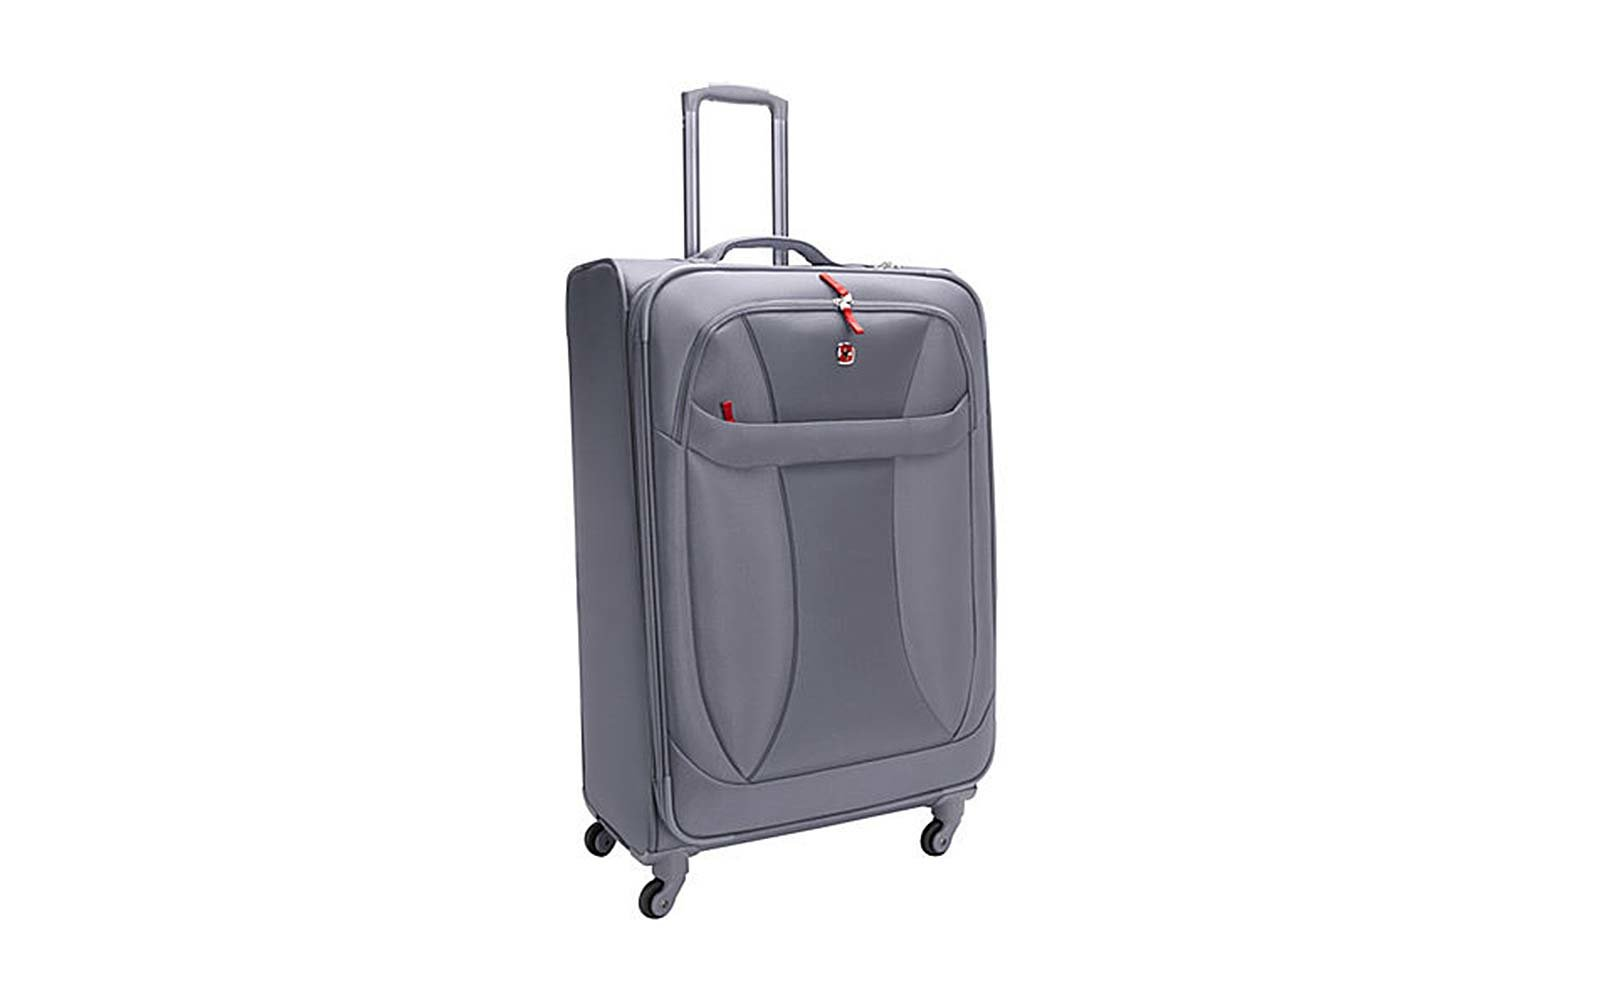 Wenger Travel Gear Spinner Luggage